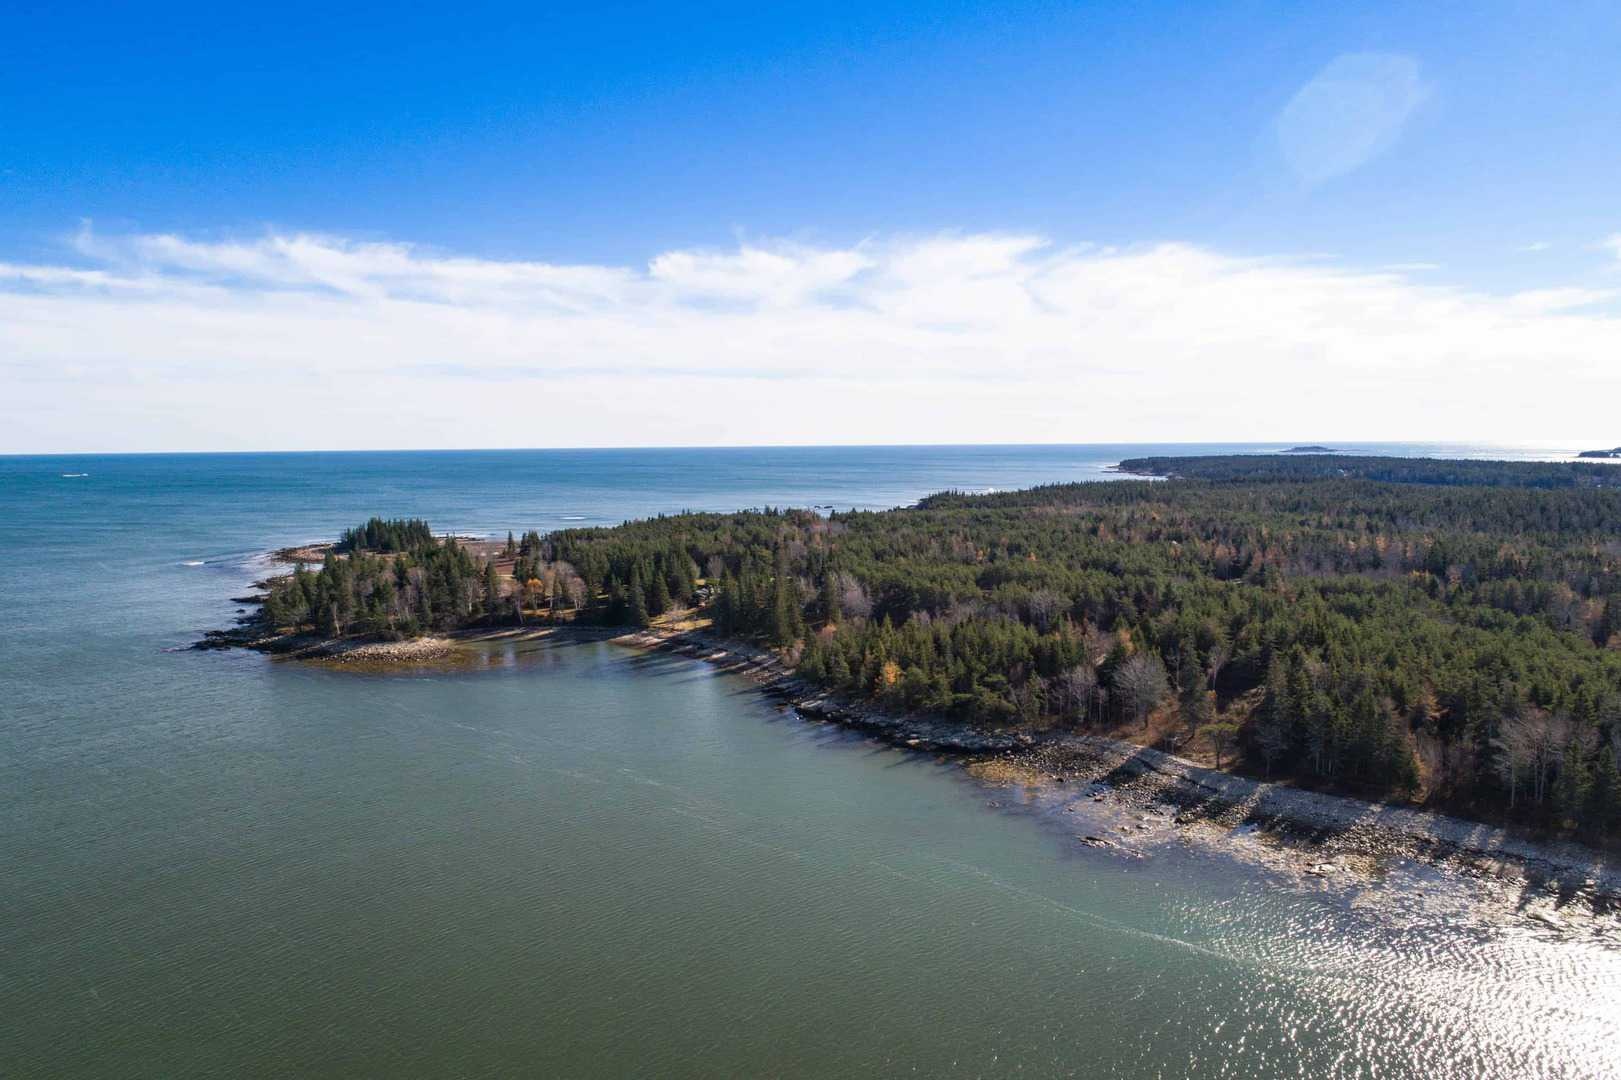 Land for Sale in The Schoodic Peninsula | The Christopher Group